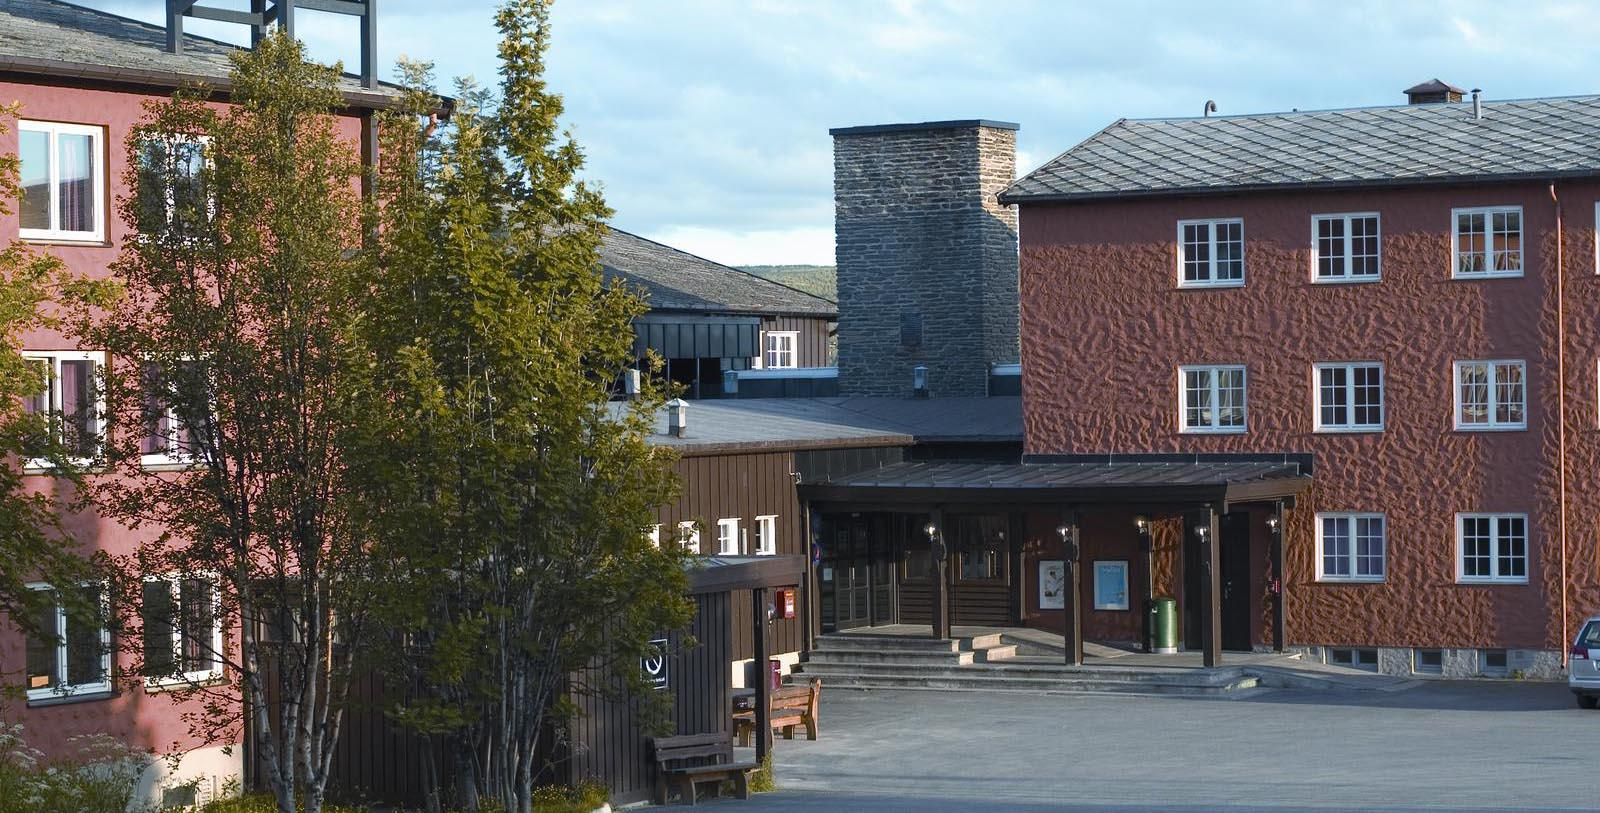 Image of Hotel Exterior Roros Hotel, 1951, Member of Historic Hotels Worldwide, in Roros, Norway, Overview